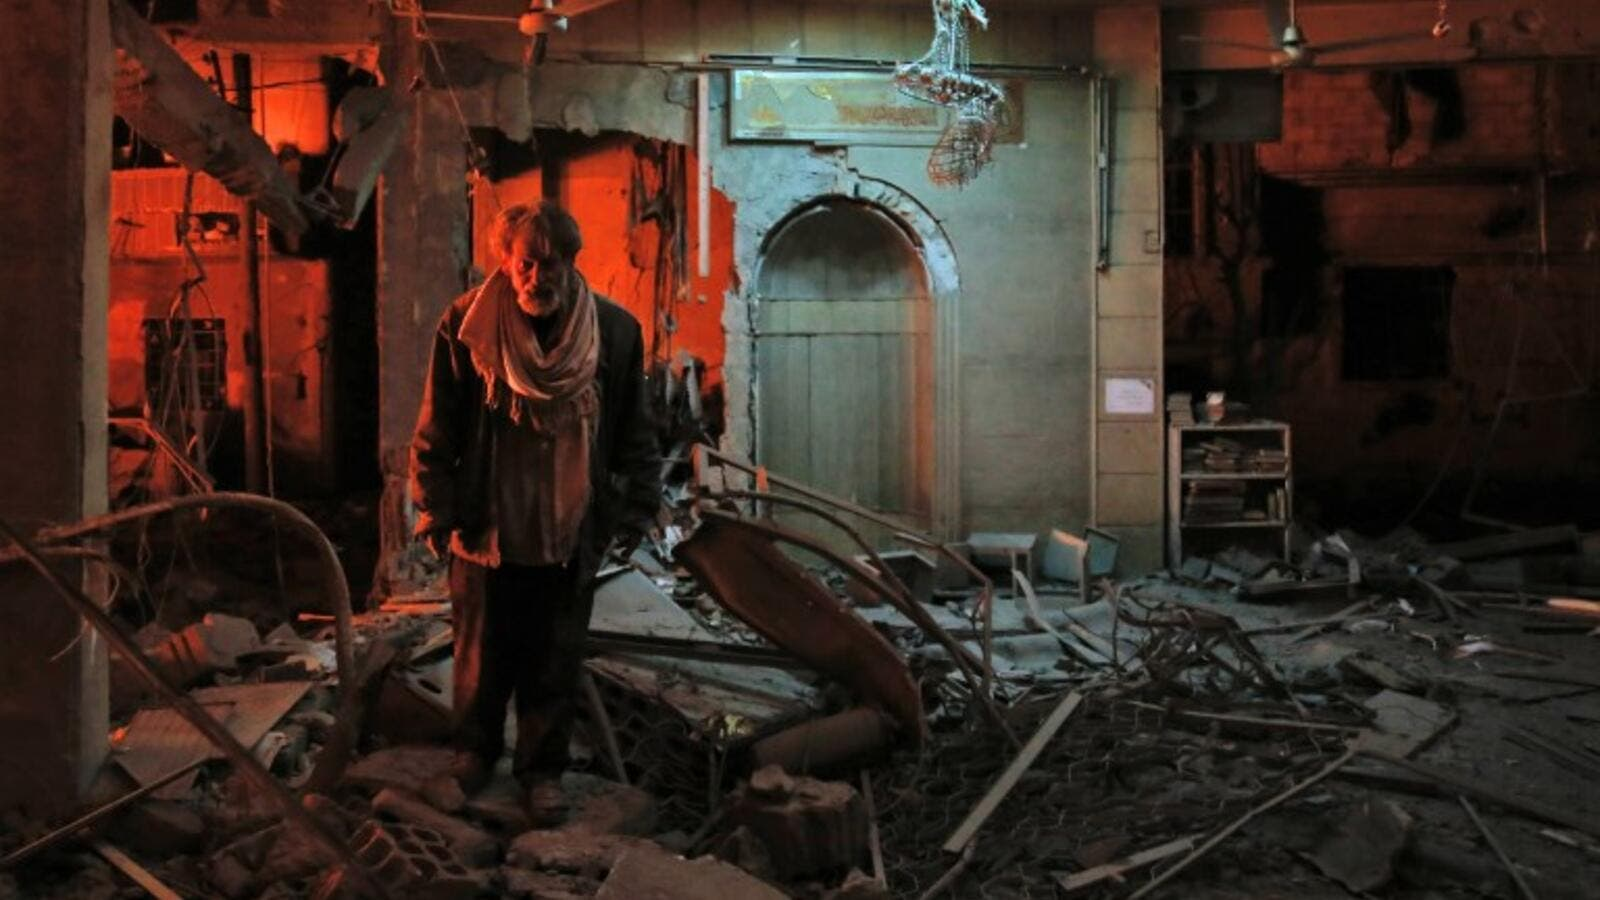 A man walks inside a mosque after an air strike in Douma, Eastern Ghouta, on Mar.19, 2018. The regime did not completely release the pressure on Douma however, the latest strikes killing at least 13 people overnight, the Syrian Observatory for Human Rights said. (HASAN MOHAMED / AFP)